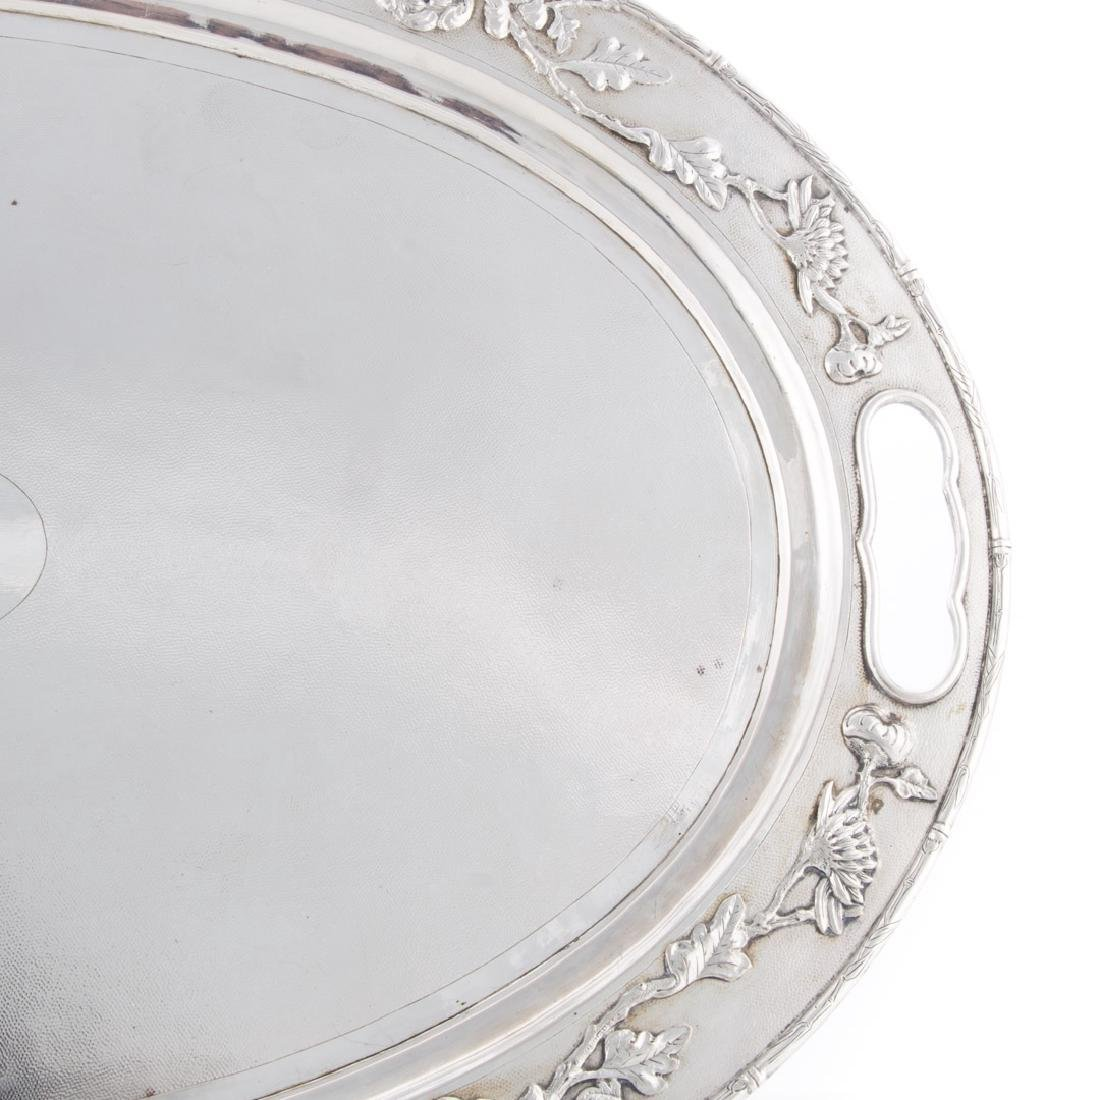 Chinese silver oval platter - 2